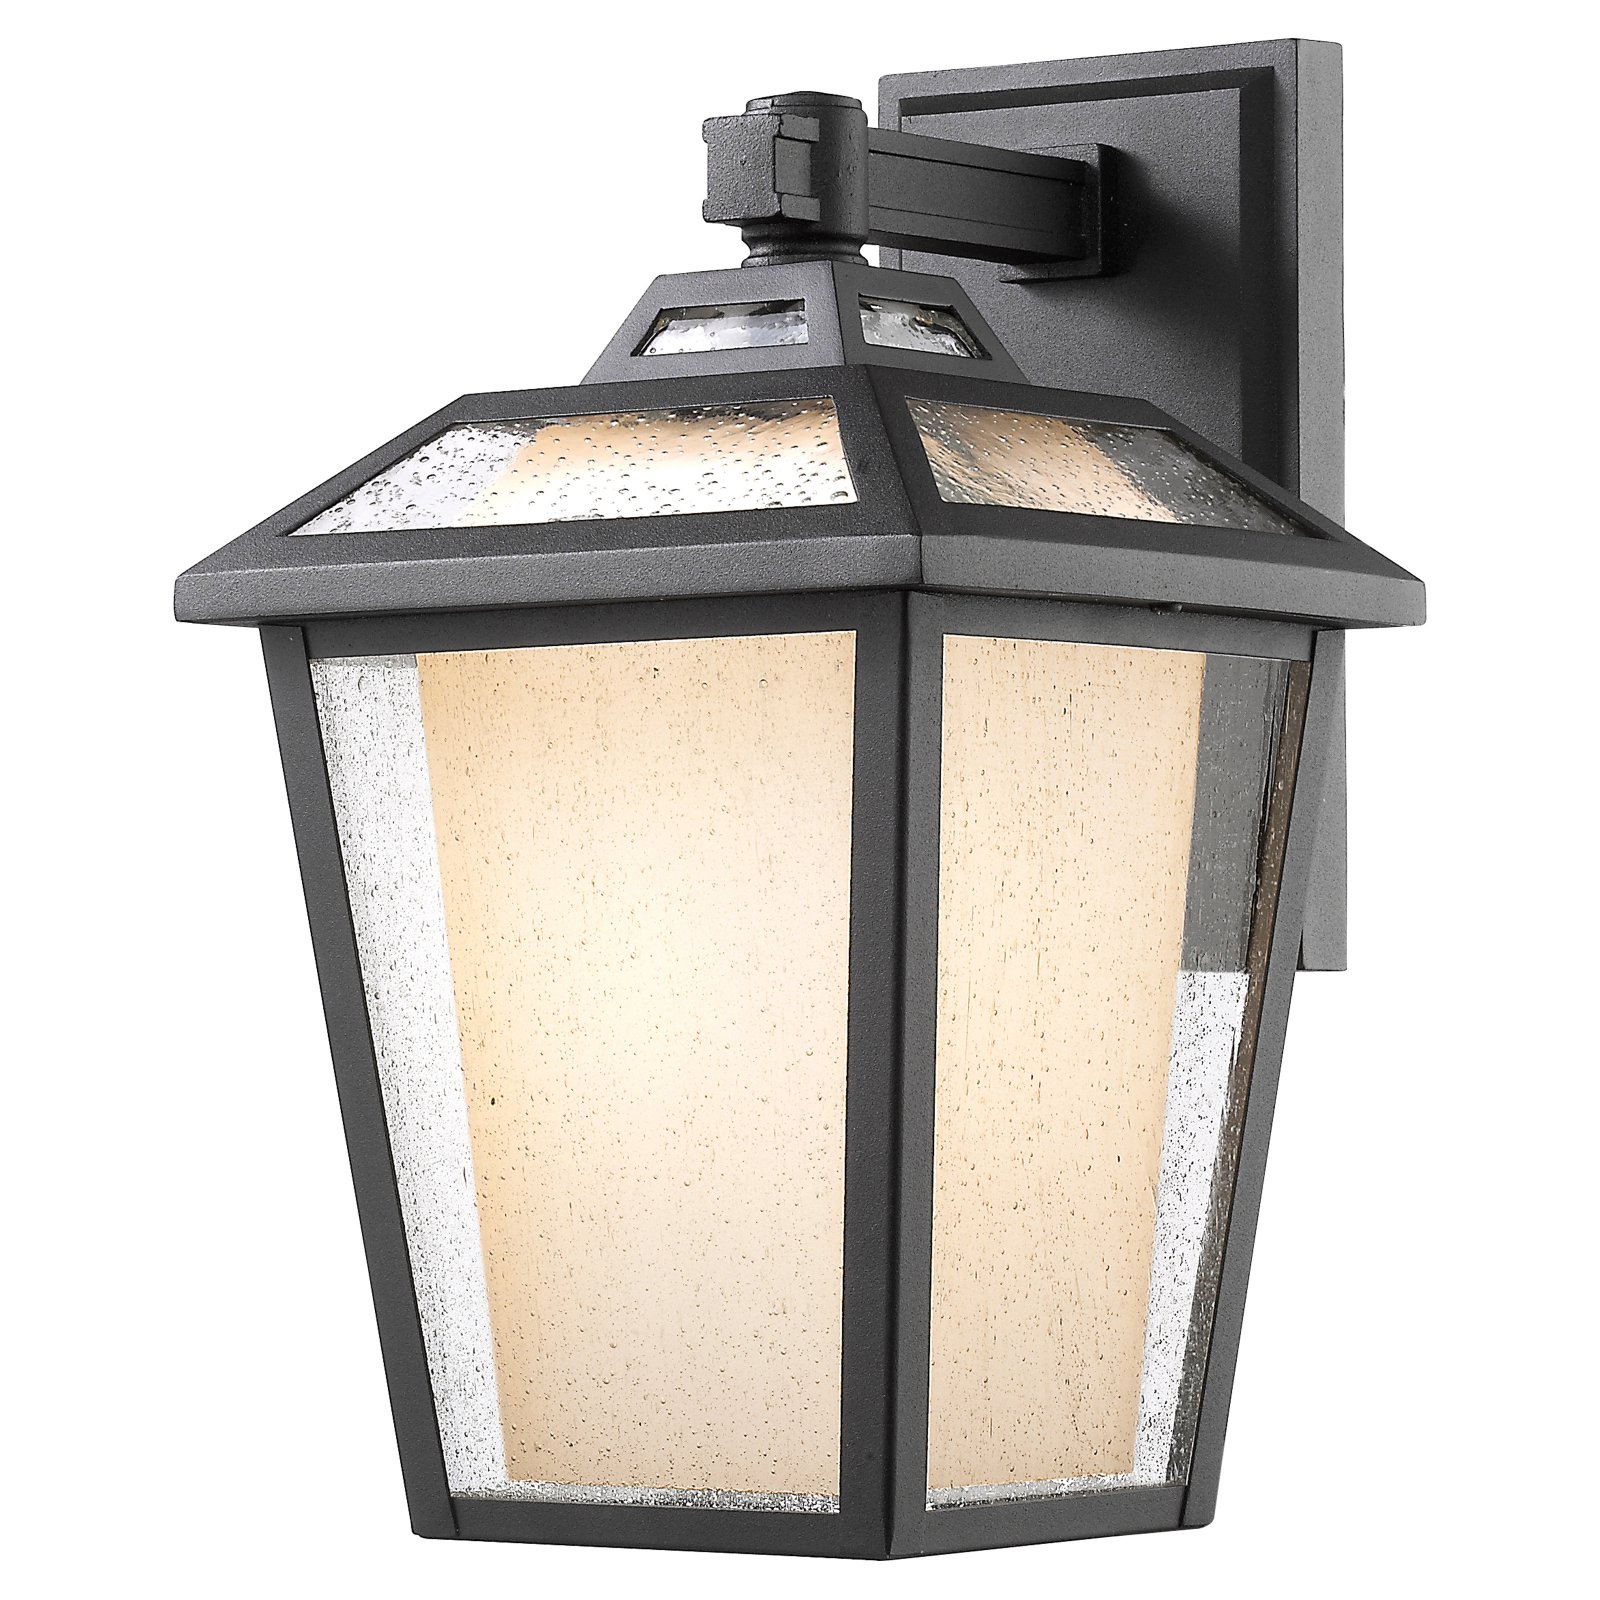 Z-Lite Memphis 1 Light Outdoor Wall Light in Black